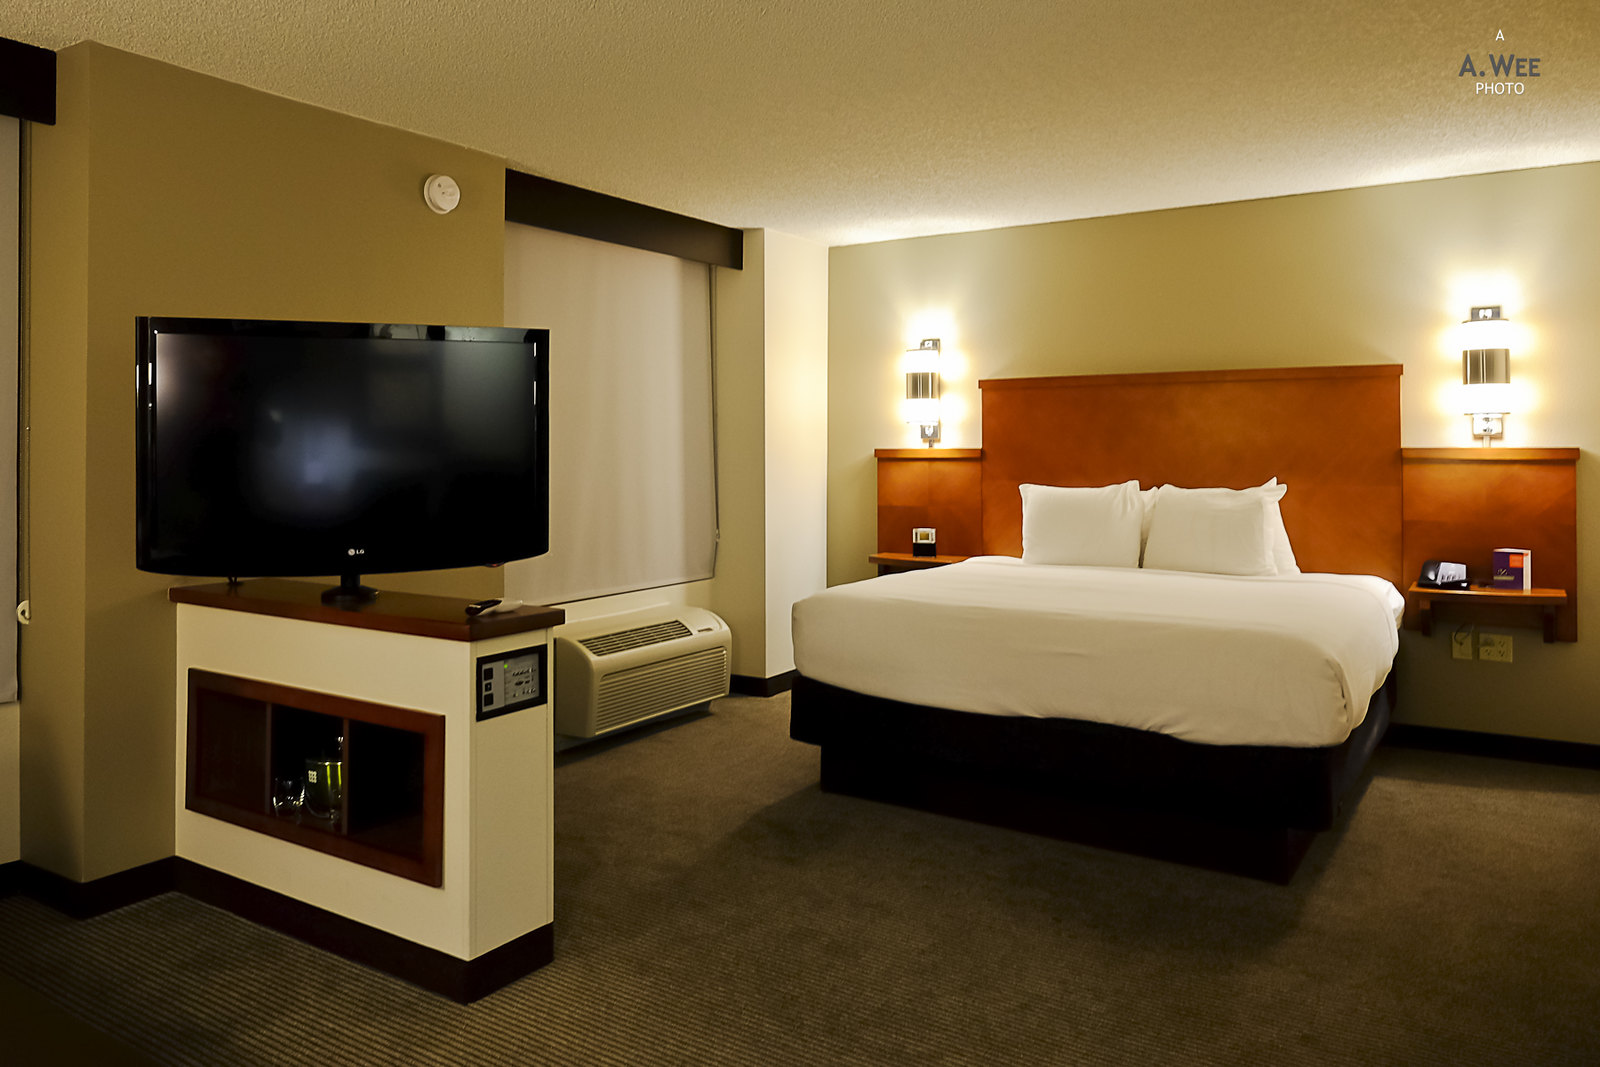 King bed and TV console